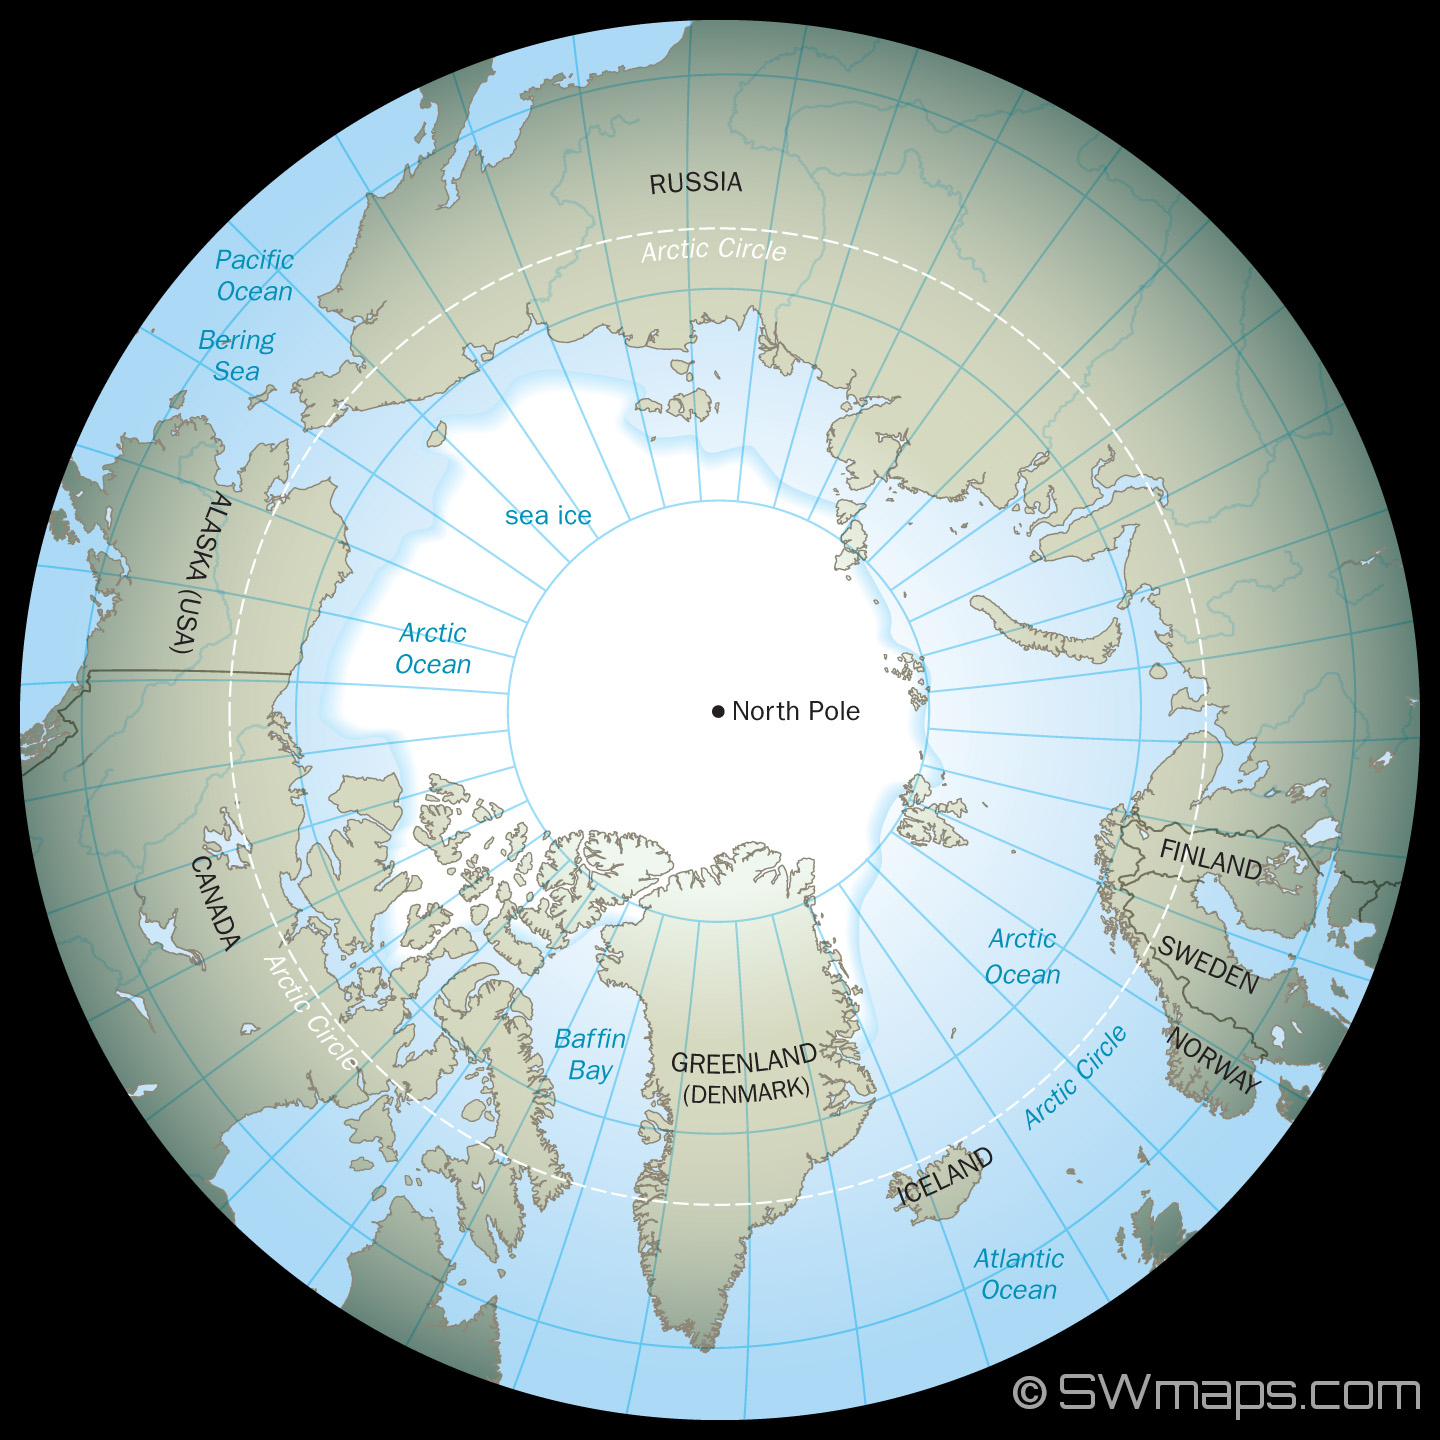 North pole arctic globe map kylegrant76 north pole arctic globe map gumiabroncs Choice Image